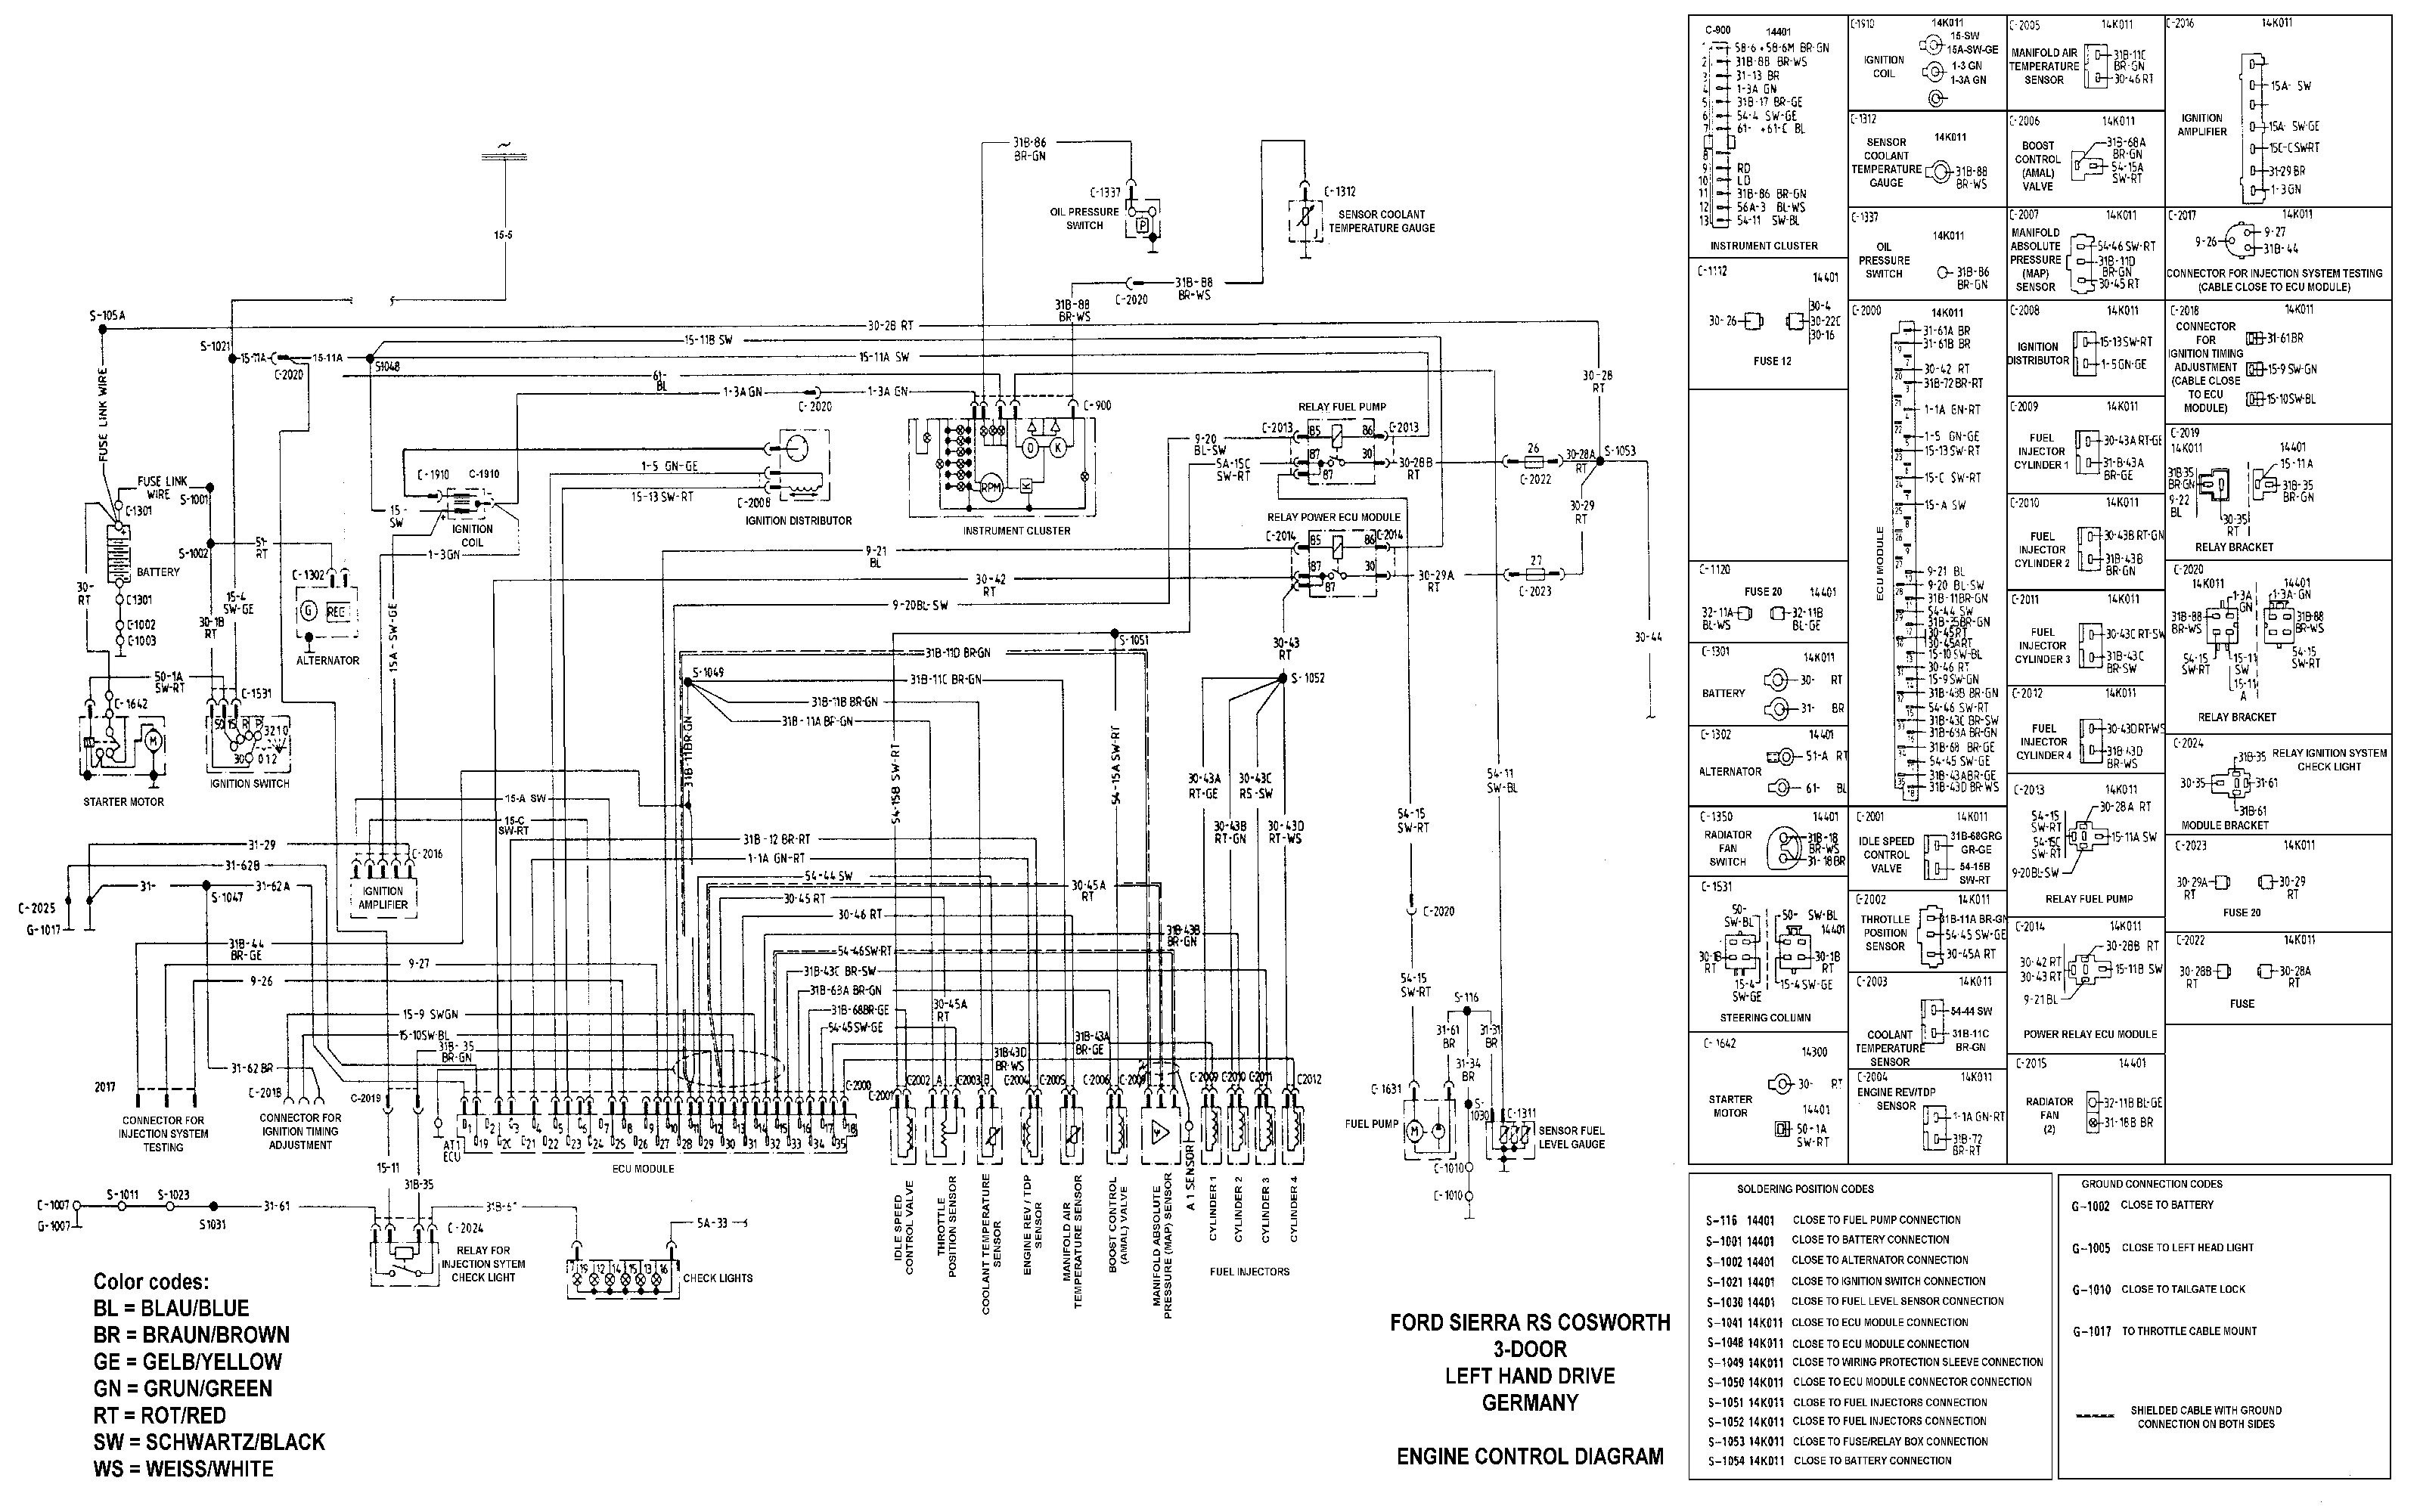 ford pinto ignition wiring diagram, ford falcon ignition wiring diagram, ford fairmont ignition wiring diagram, ford festiva carburetor diagram, ford 8n ignition wiring diagram, 1997 ford wiring diagram, ford festiva radio wiring, ford f-150 ignition wiring diagram, ford festiva engine diagram, ford festiva wiring harness diagram, 1937 ford ignition wiring diagram, ford mustang ignition wiring diagram, ford f250 ignition wiring diagram, ford festiva transmission diagram, ford e250 ignition wiring diagram, ford expedition ignition wiring diagram, on 88 ford festiva ignition wiring diagram